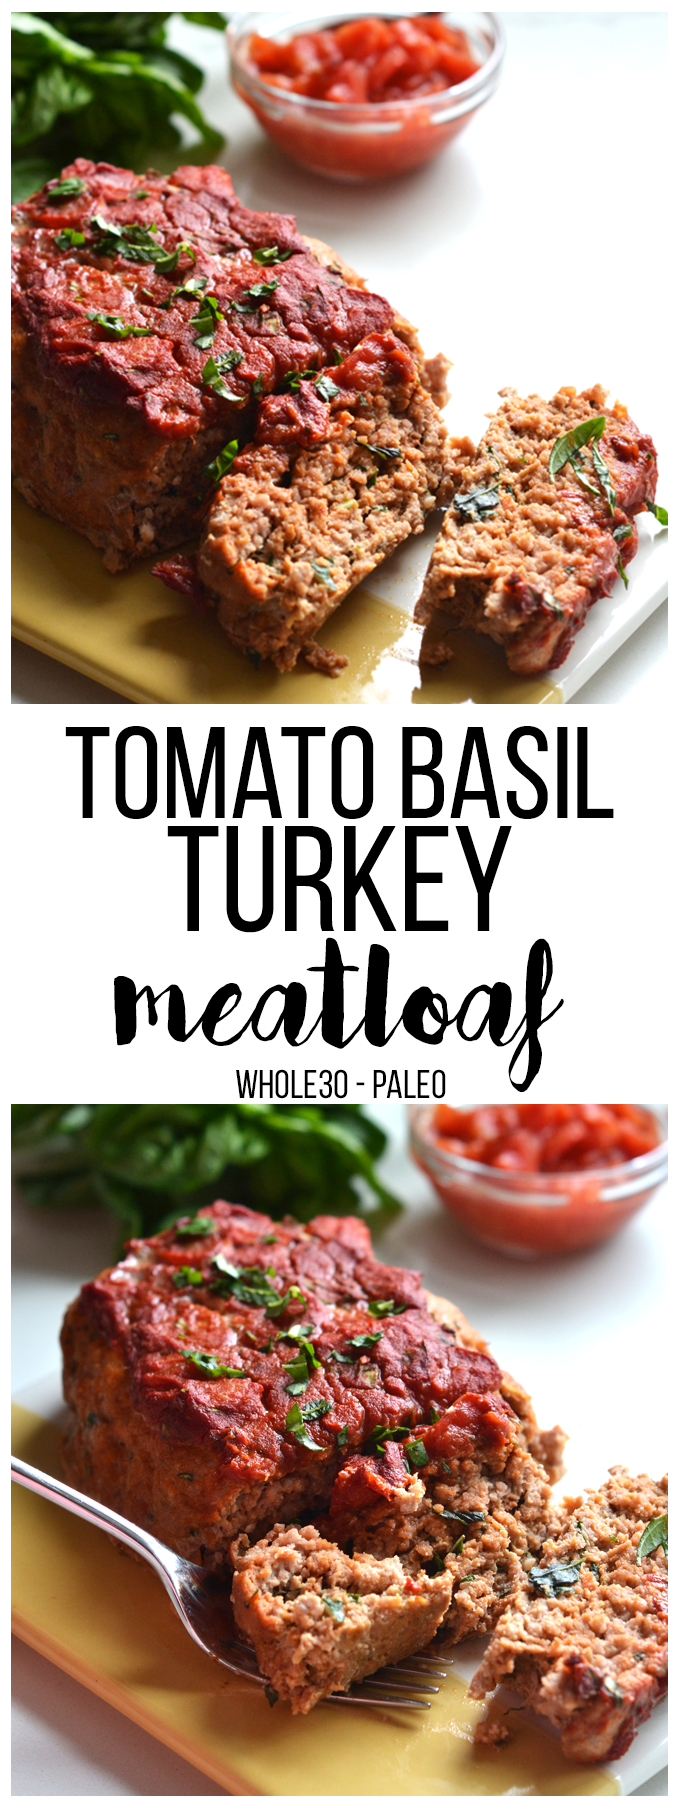 This Tomato Basil Turkey Meatloaf recipe is a perfect whole30 & paleo option that is super easy to throw together for a weeknight dinner! #whole30recipes